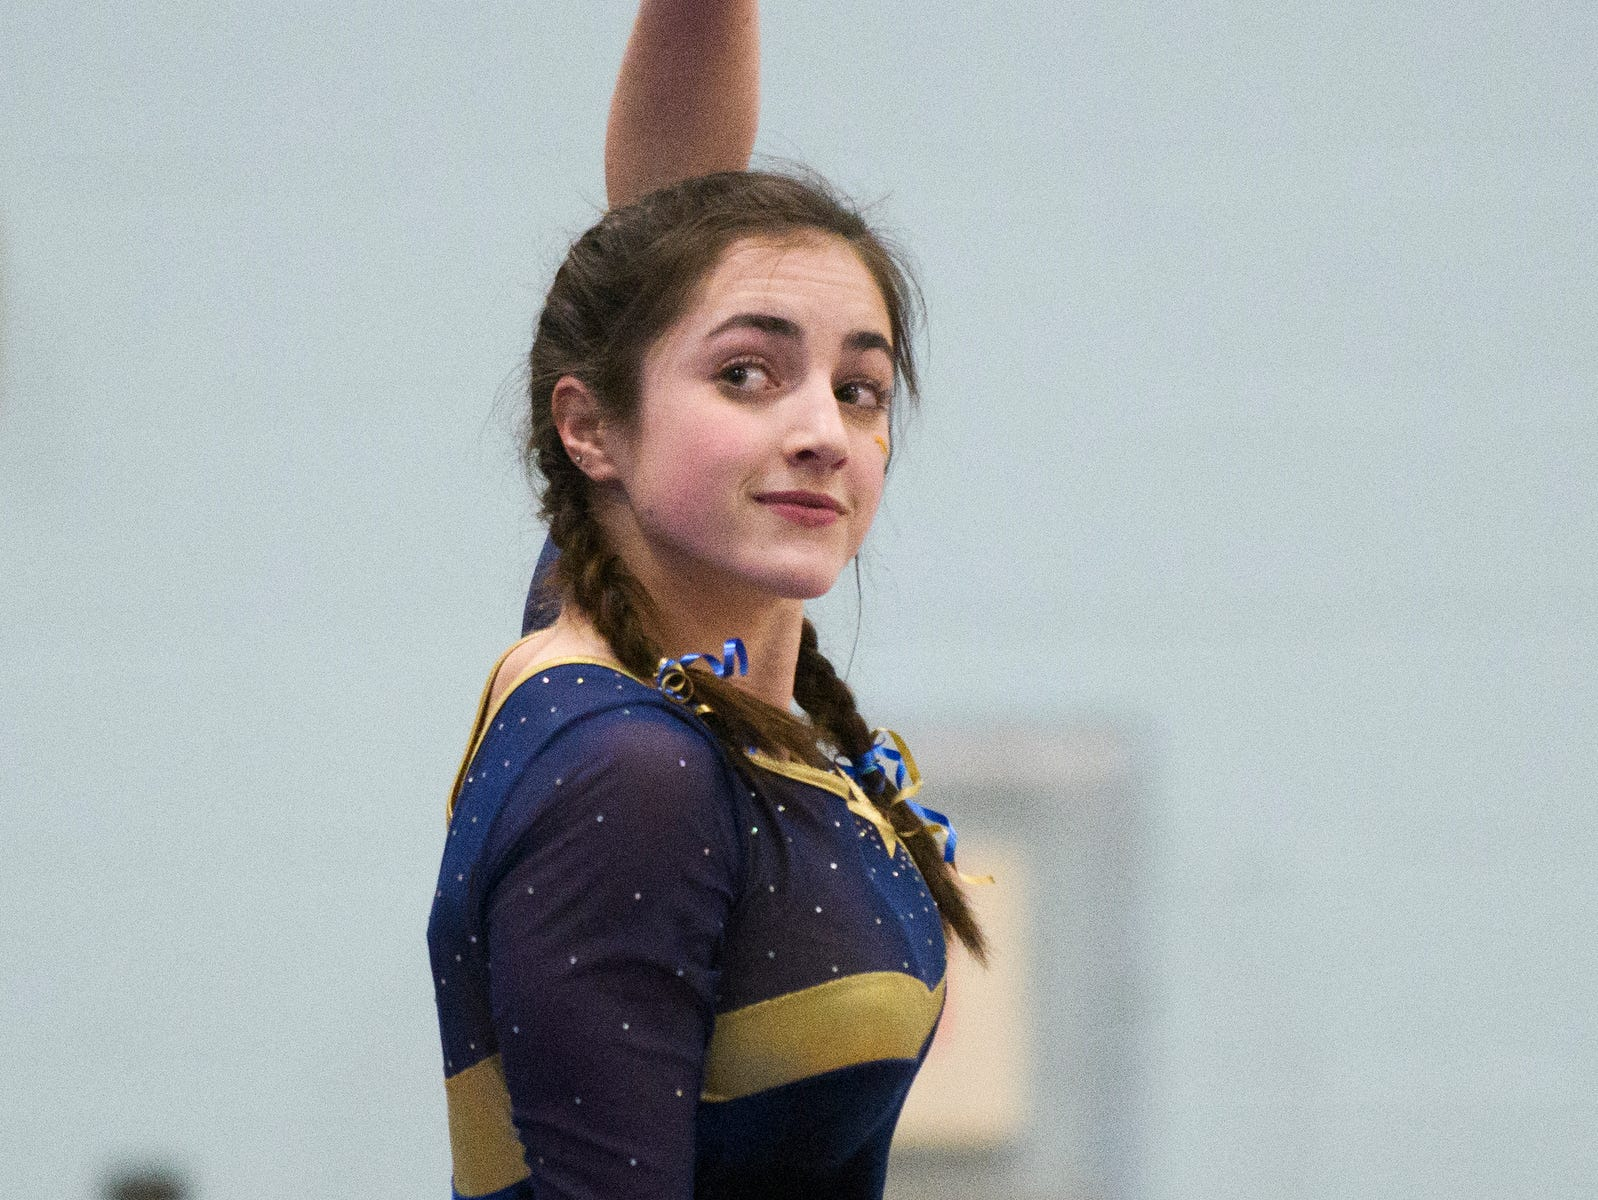 Essex's Livia Ball compete in the bar during the 2019 high school gymnastics championship at Essex High School on Saturday afternoon February 16, 2019 in Essex, Vermont.